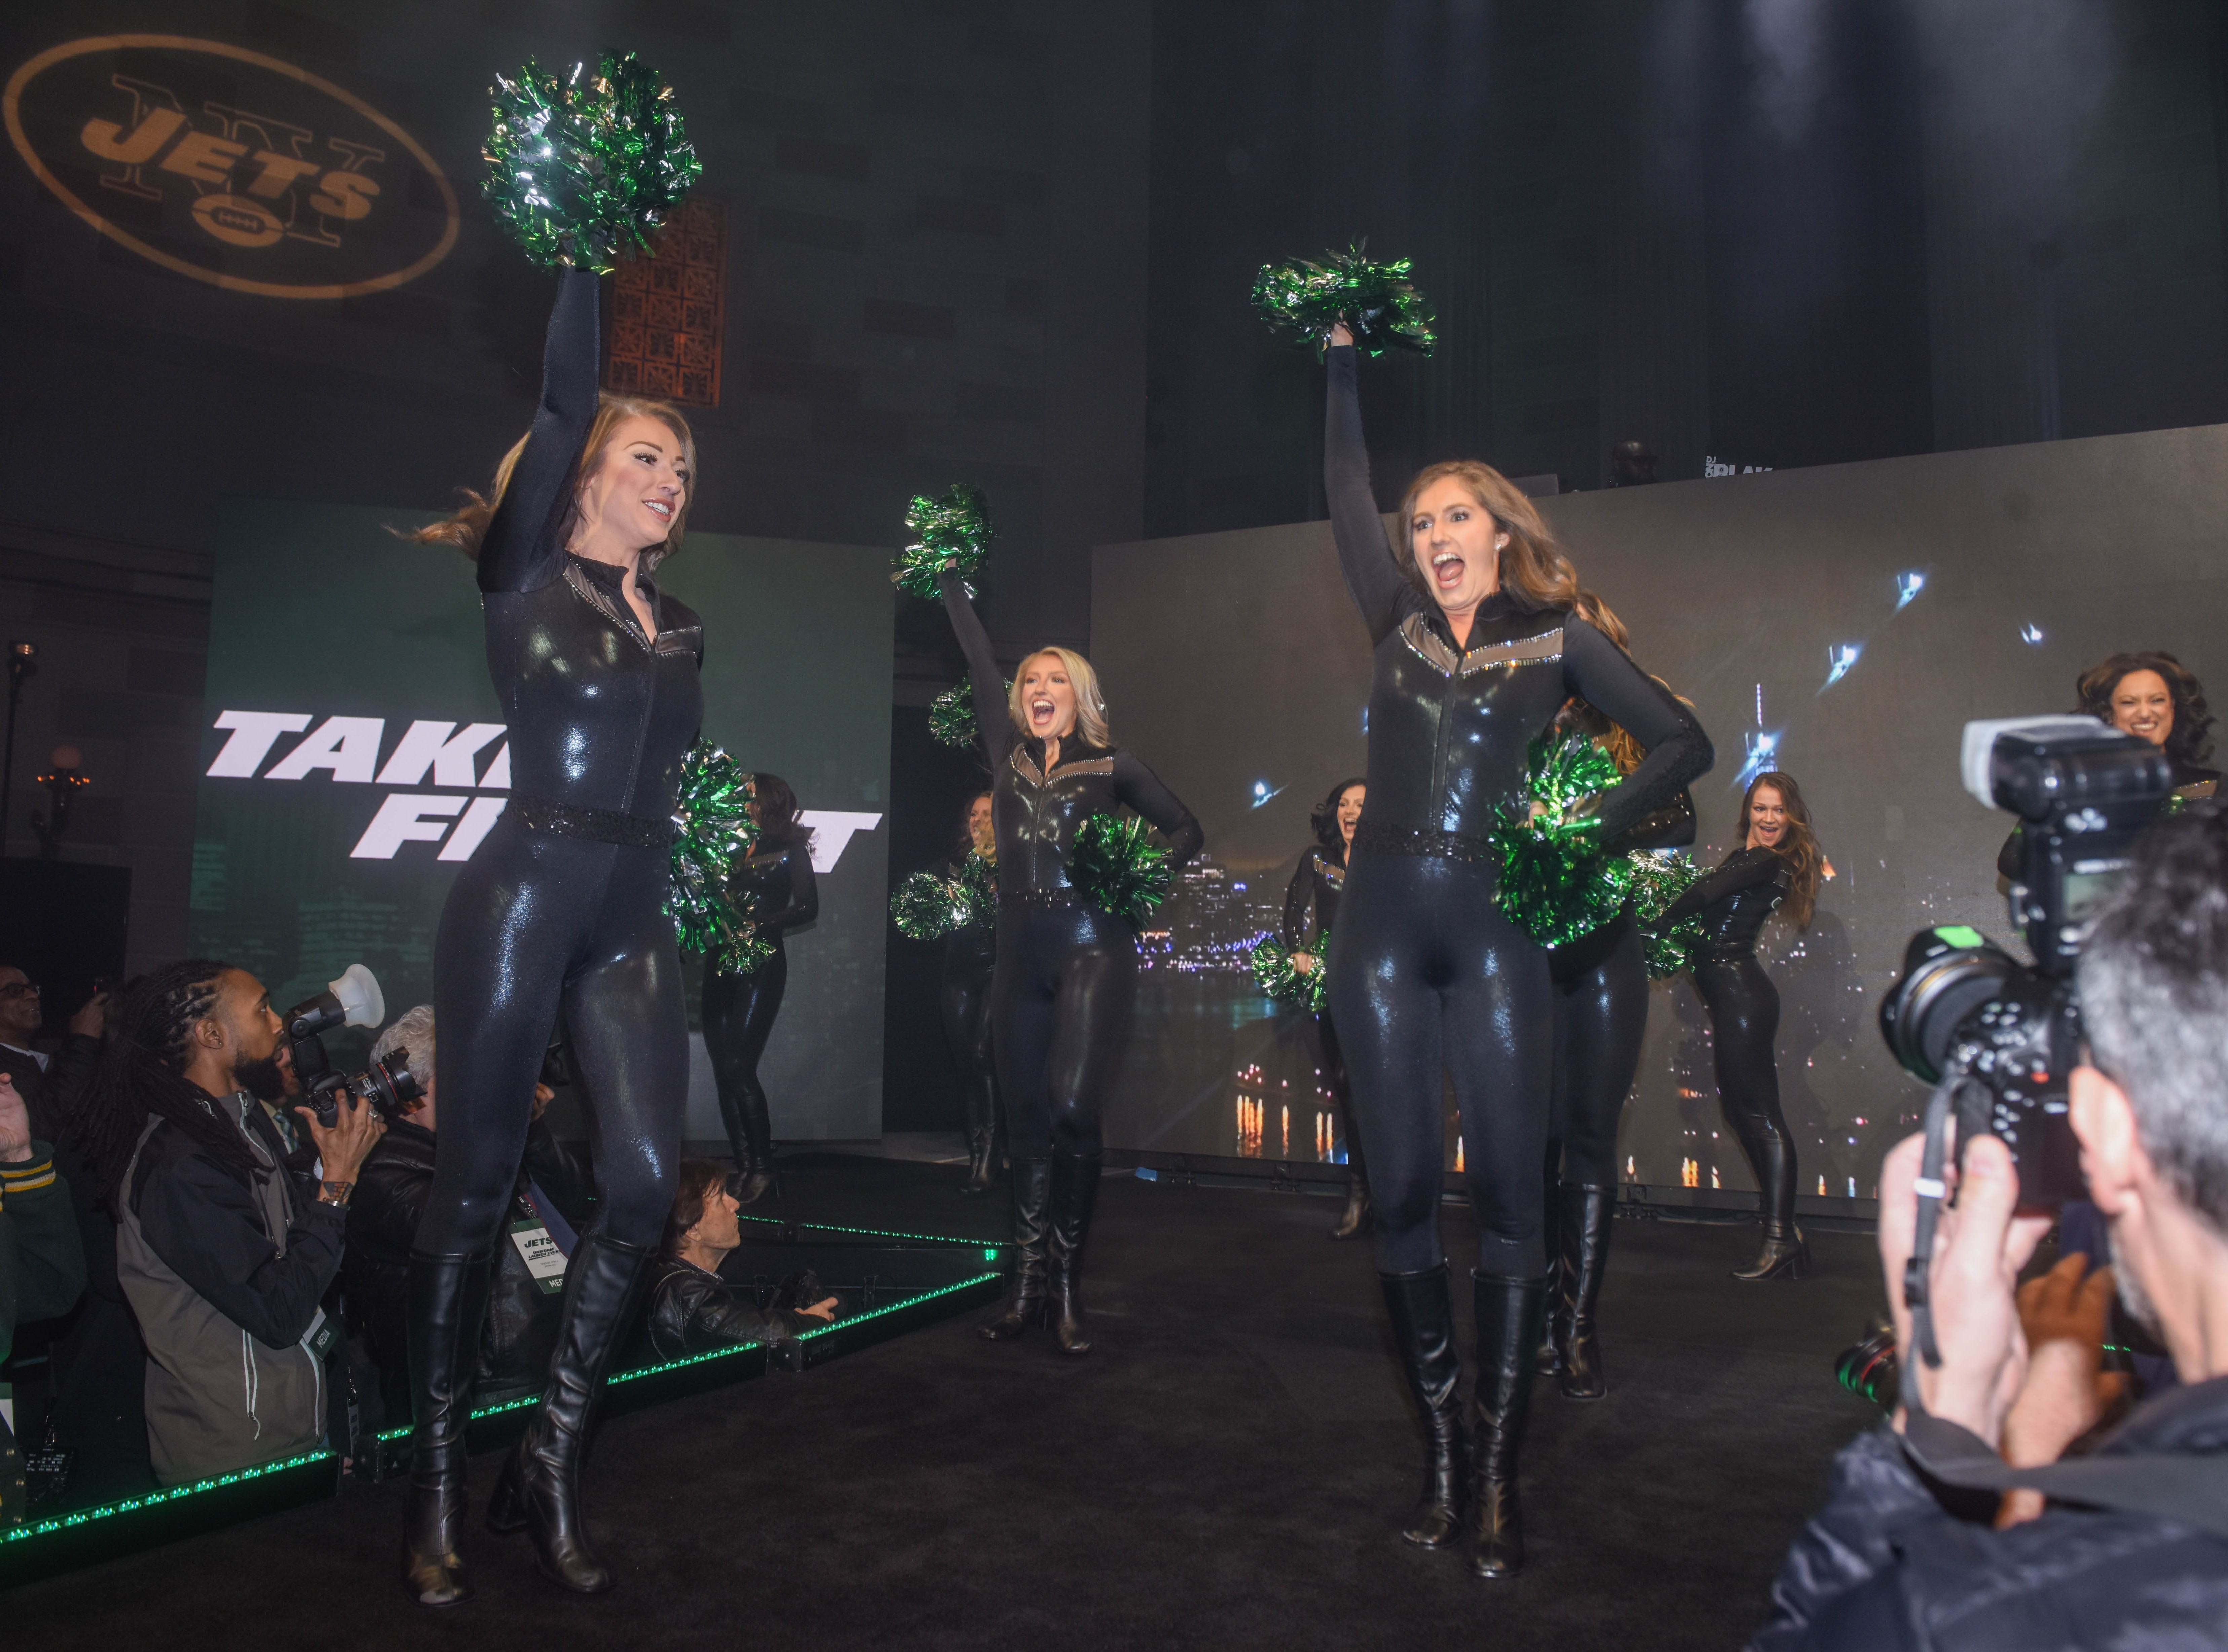 Jets Flight Crew. The NY Jets unveiled their new football uniforms with an event hosted by JB Smoove at Gotham Hall in New York. 04/05/2019